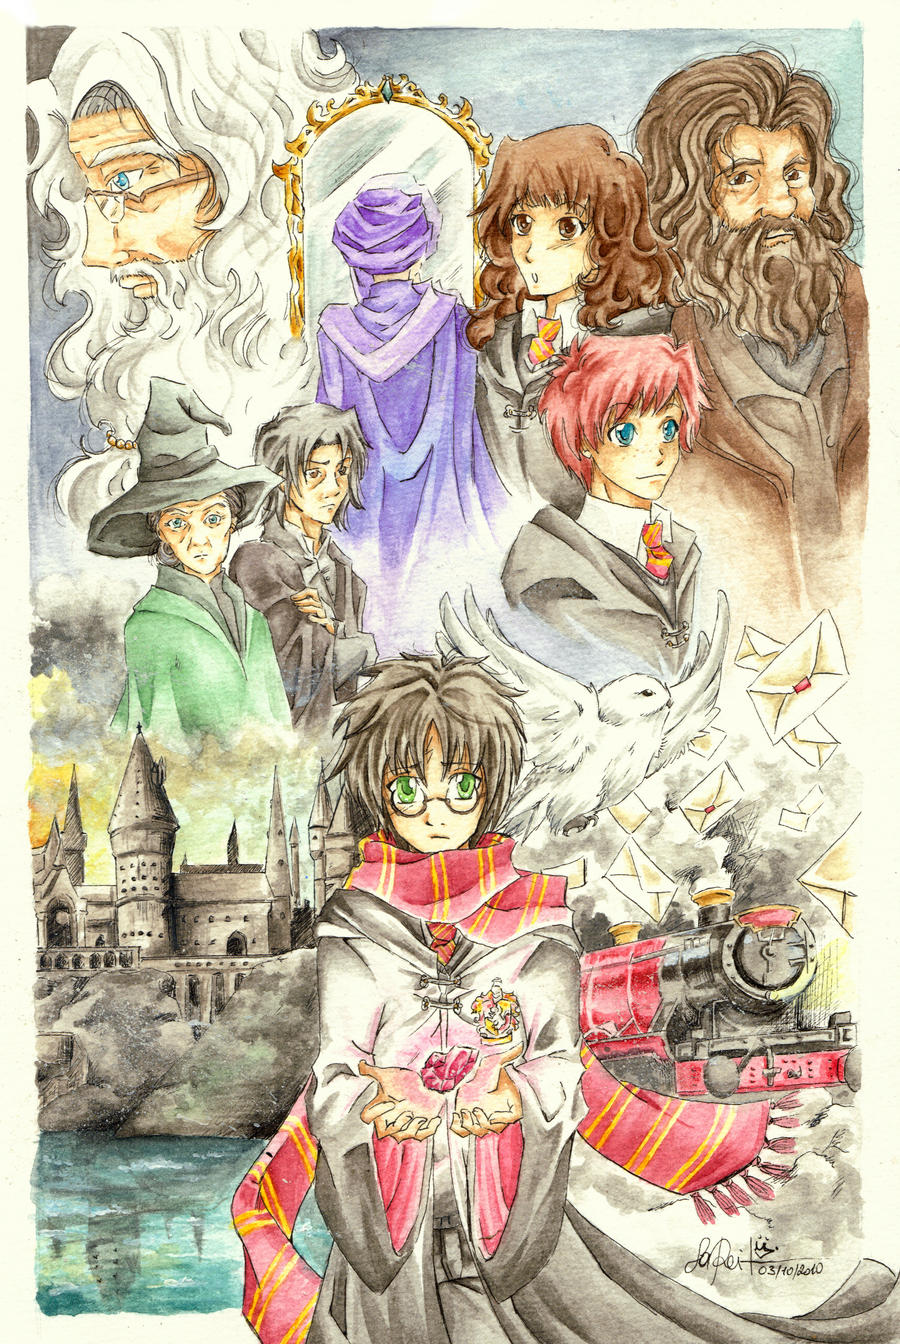 _HP:the sorcerer's stone_ by Aeris1990